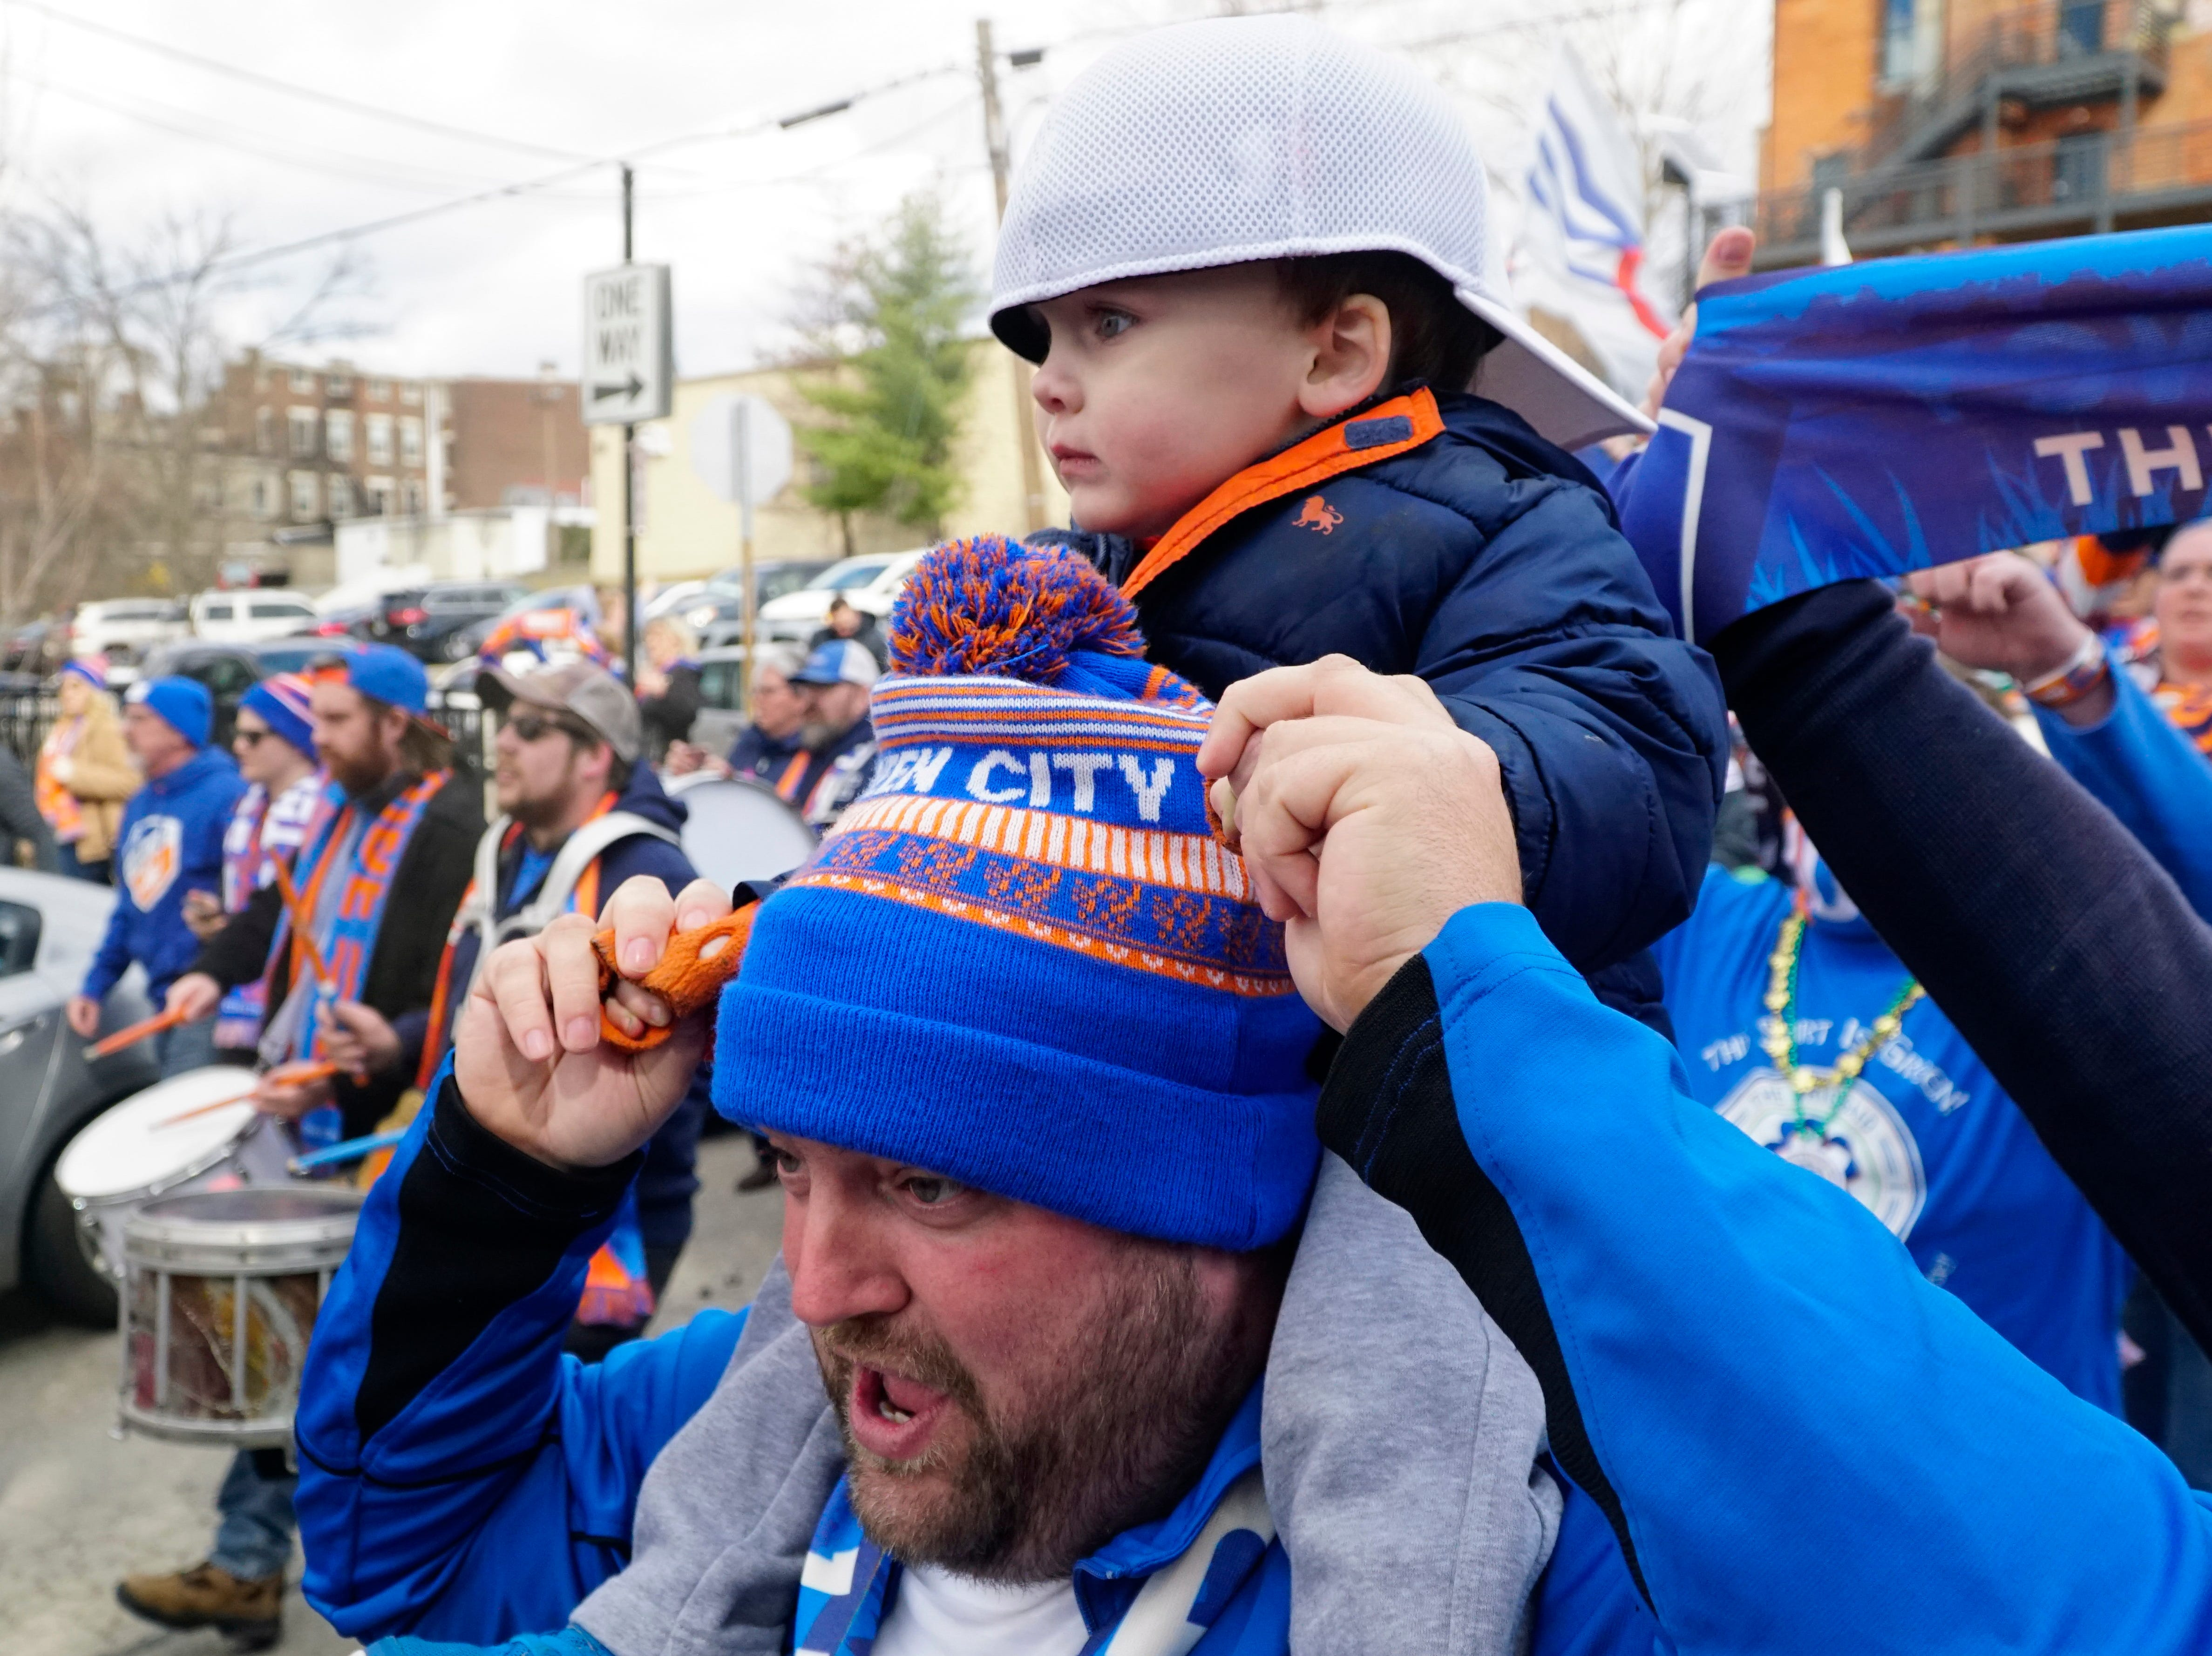 Ryan Sparks carries his son Parker, age two, ahead of a crush of FC Cincinnati fans headed to the first FCC home game against Portland at Nippert Stadium, March 17, 2019.